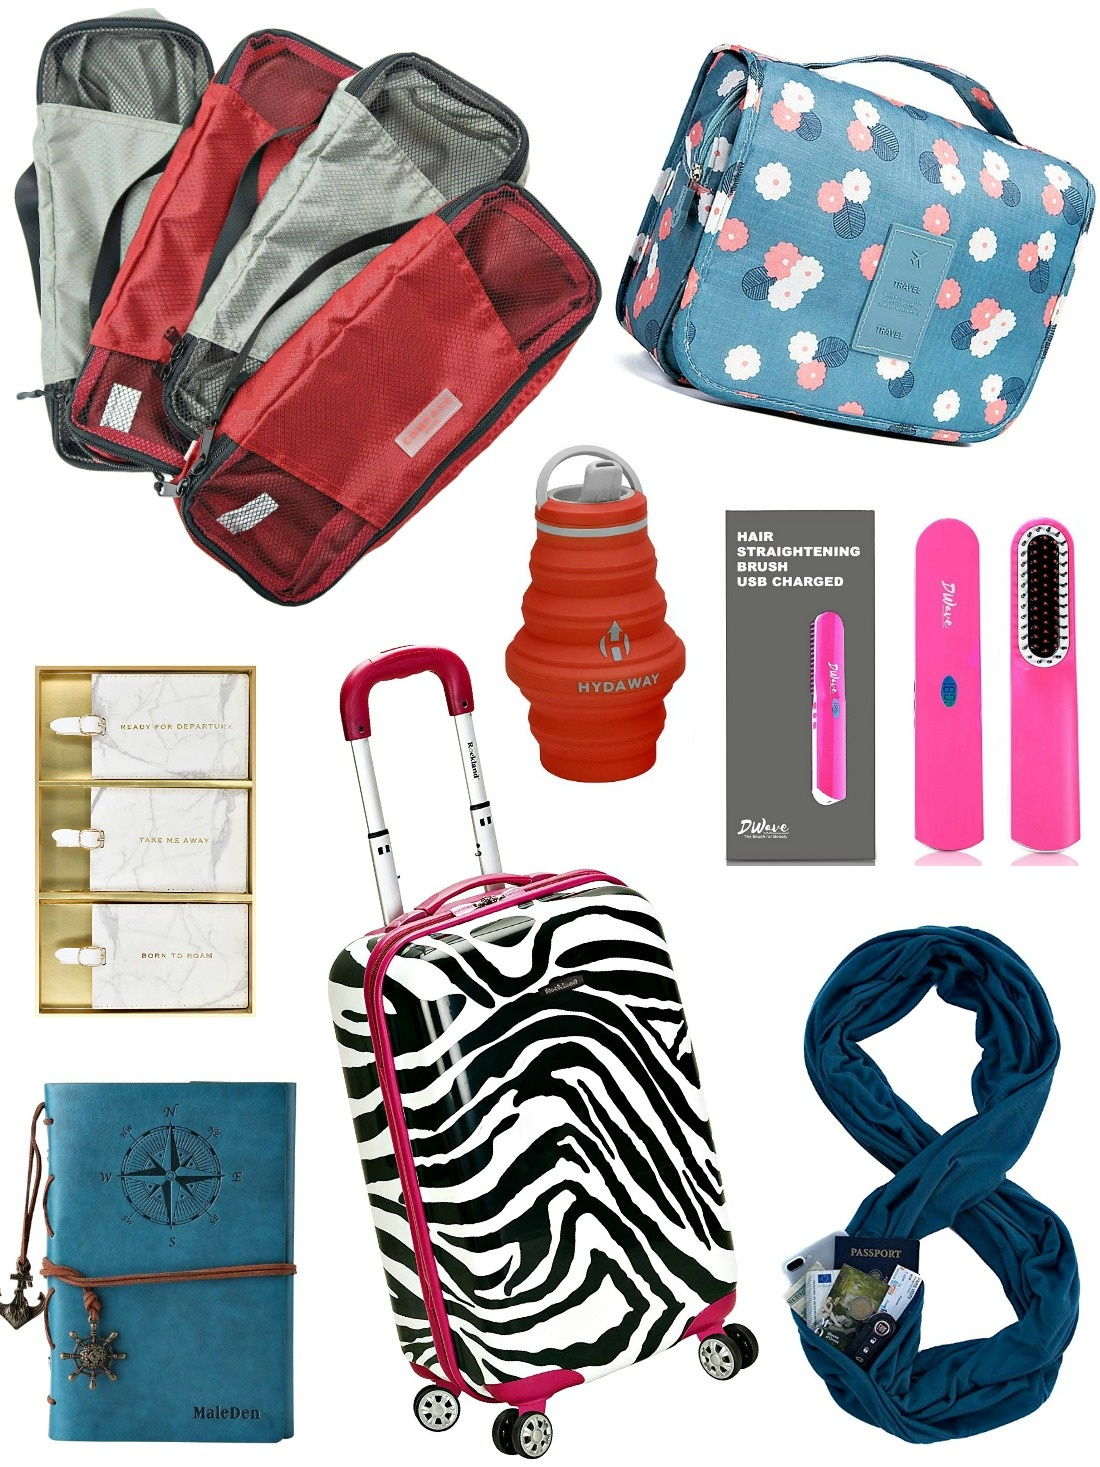 Looking for the best travel gifts for her? Check out these items that she would actually be excited to pack for her next adventure!